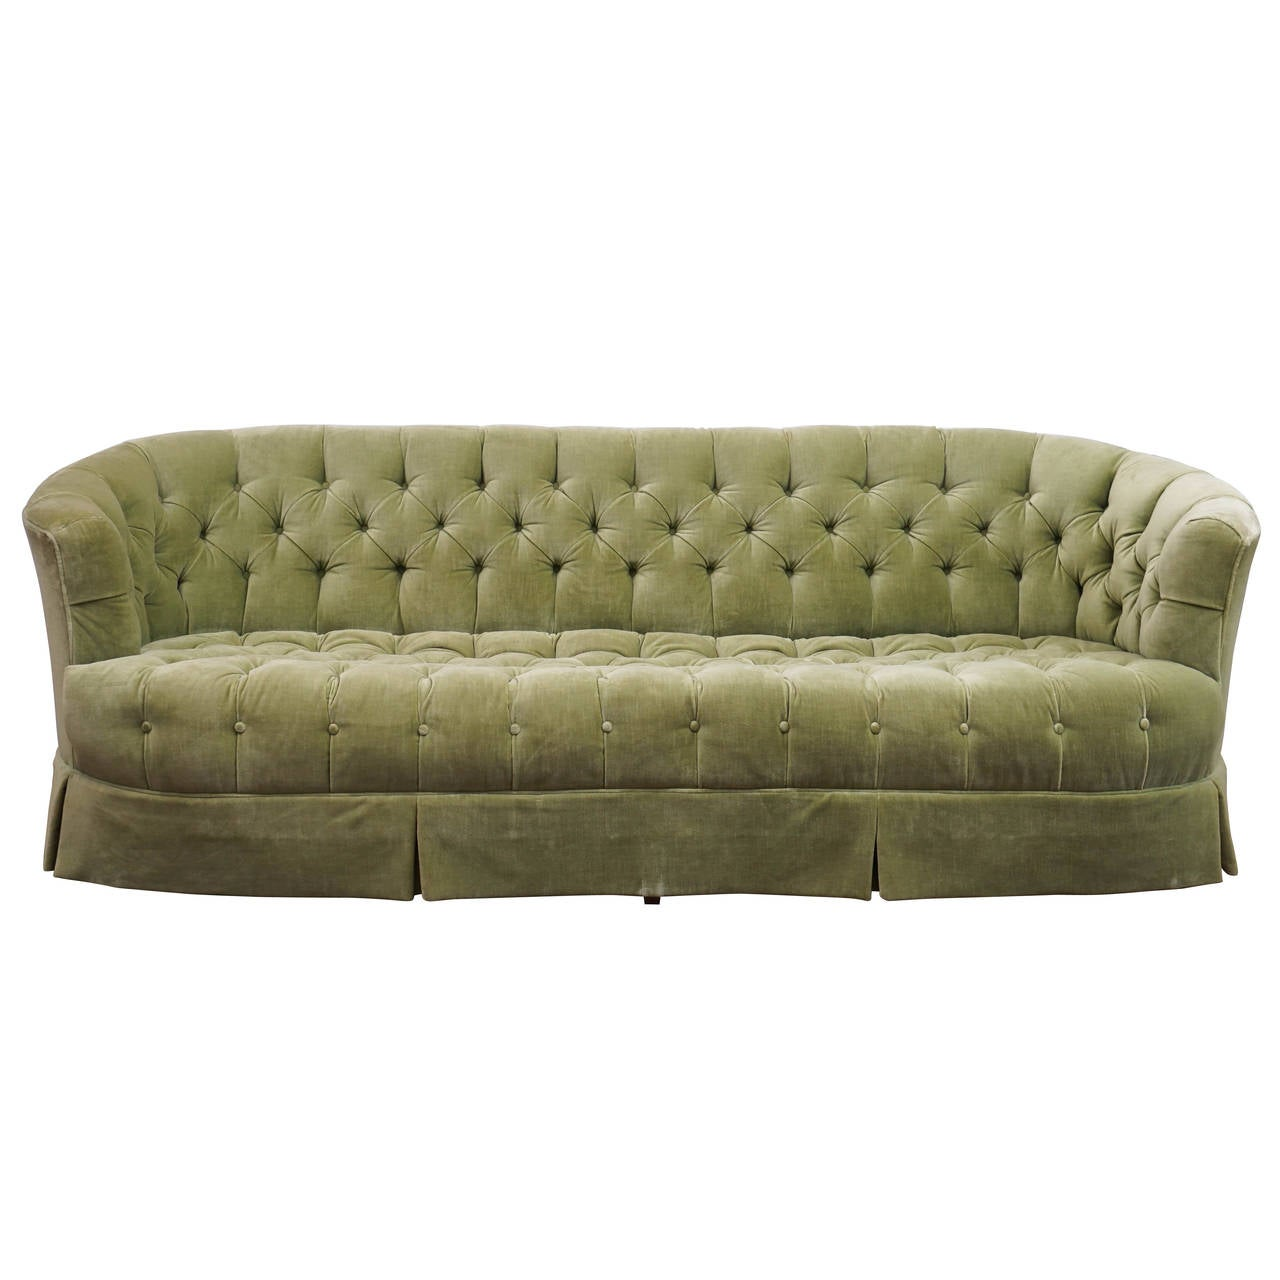 Hollywood regency chesterfield mint green velvet tufted for Tufted couches for sale